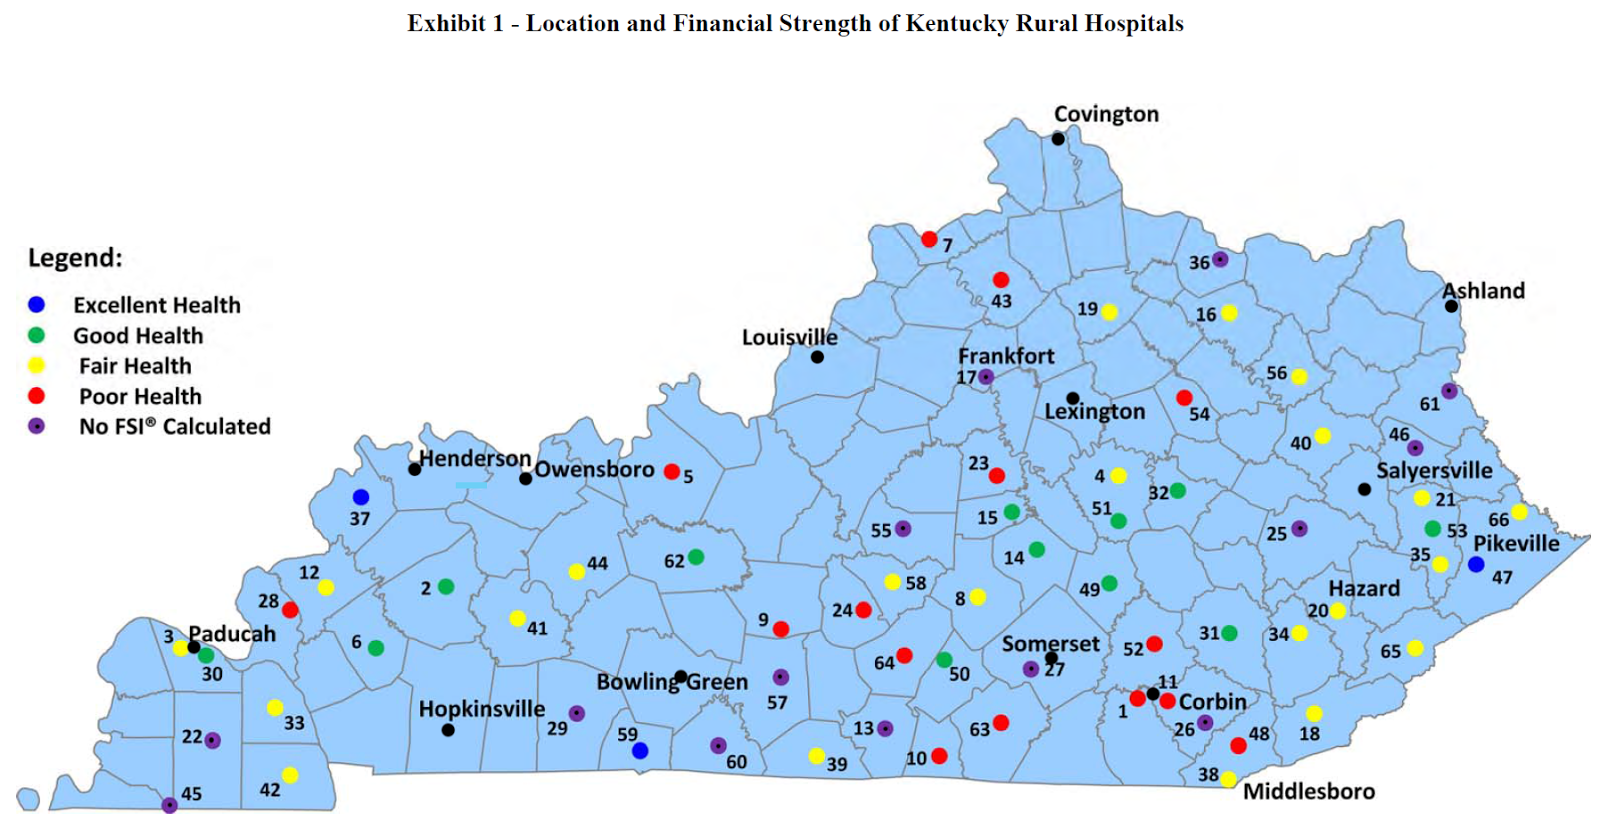 Kentucky Health News Up To 13 Of Rural Hospitals In Poor